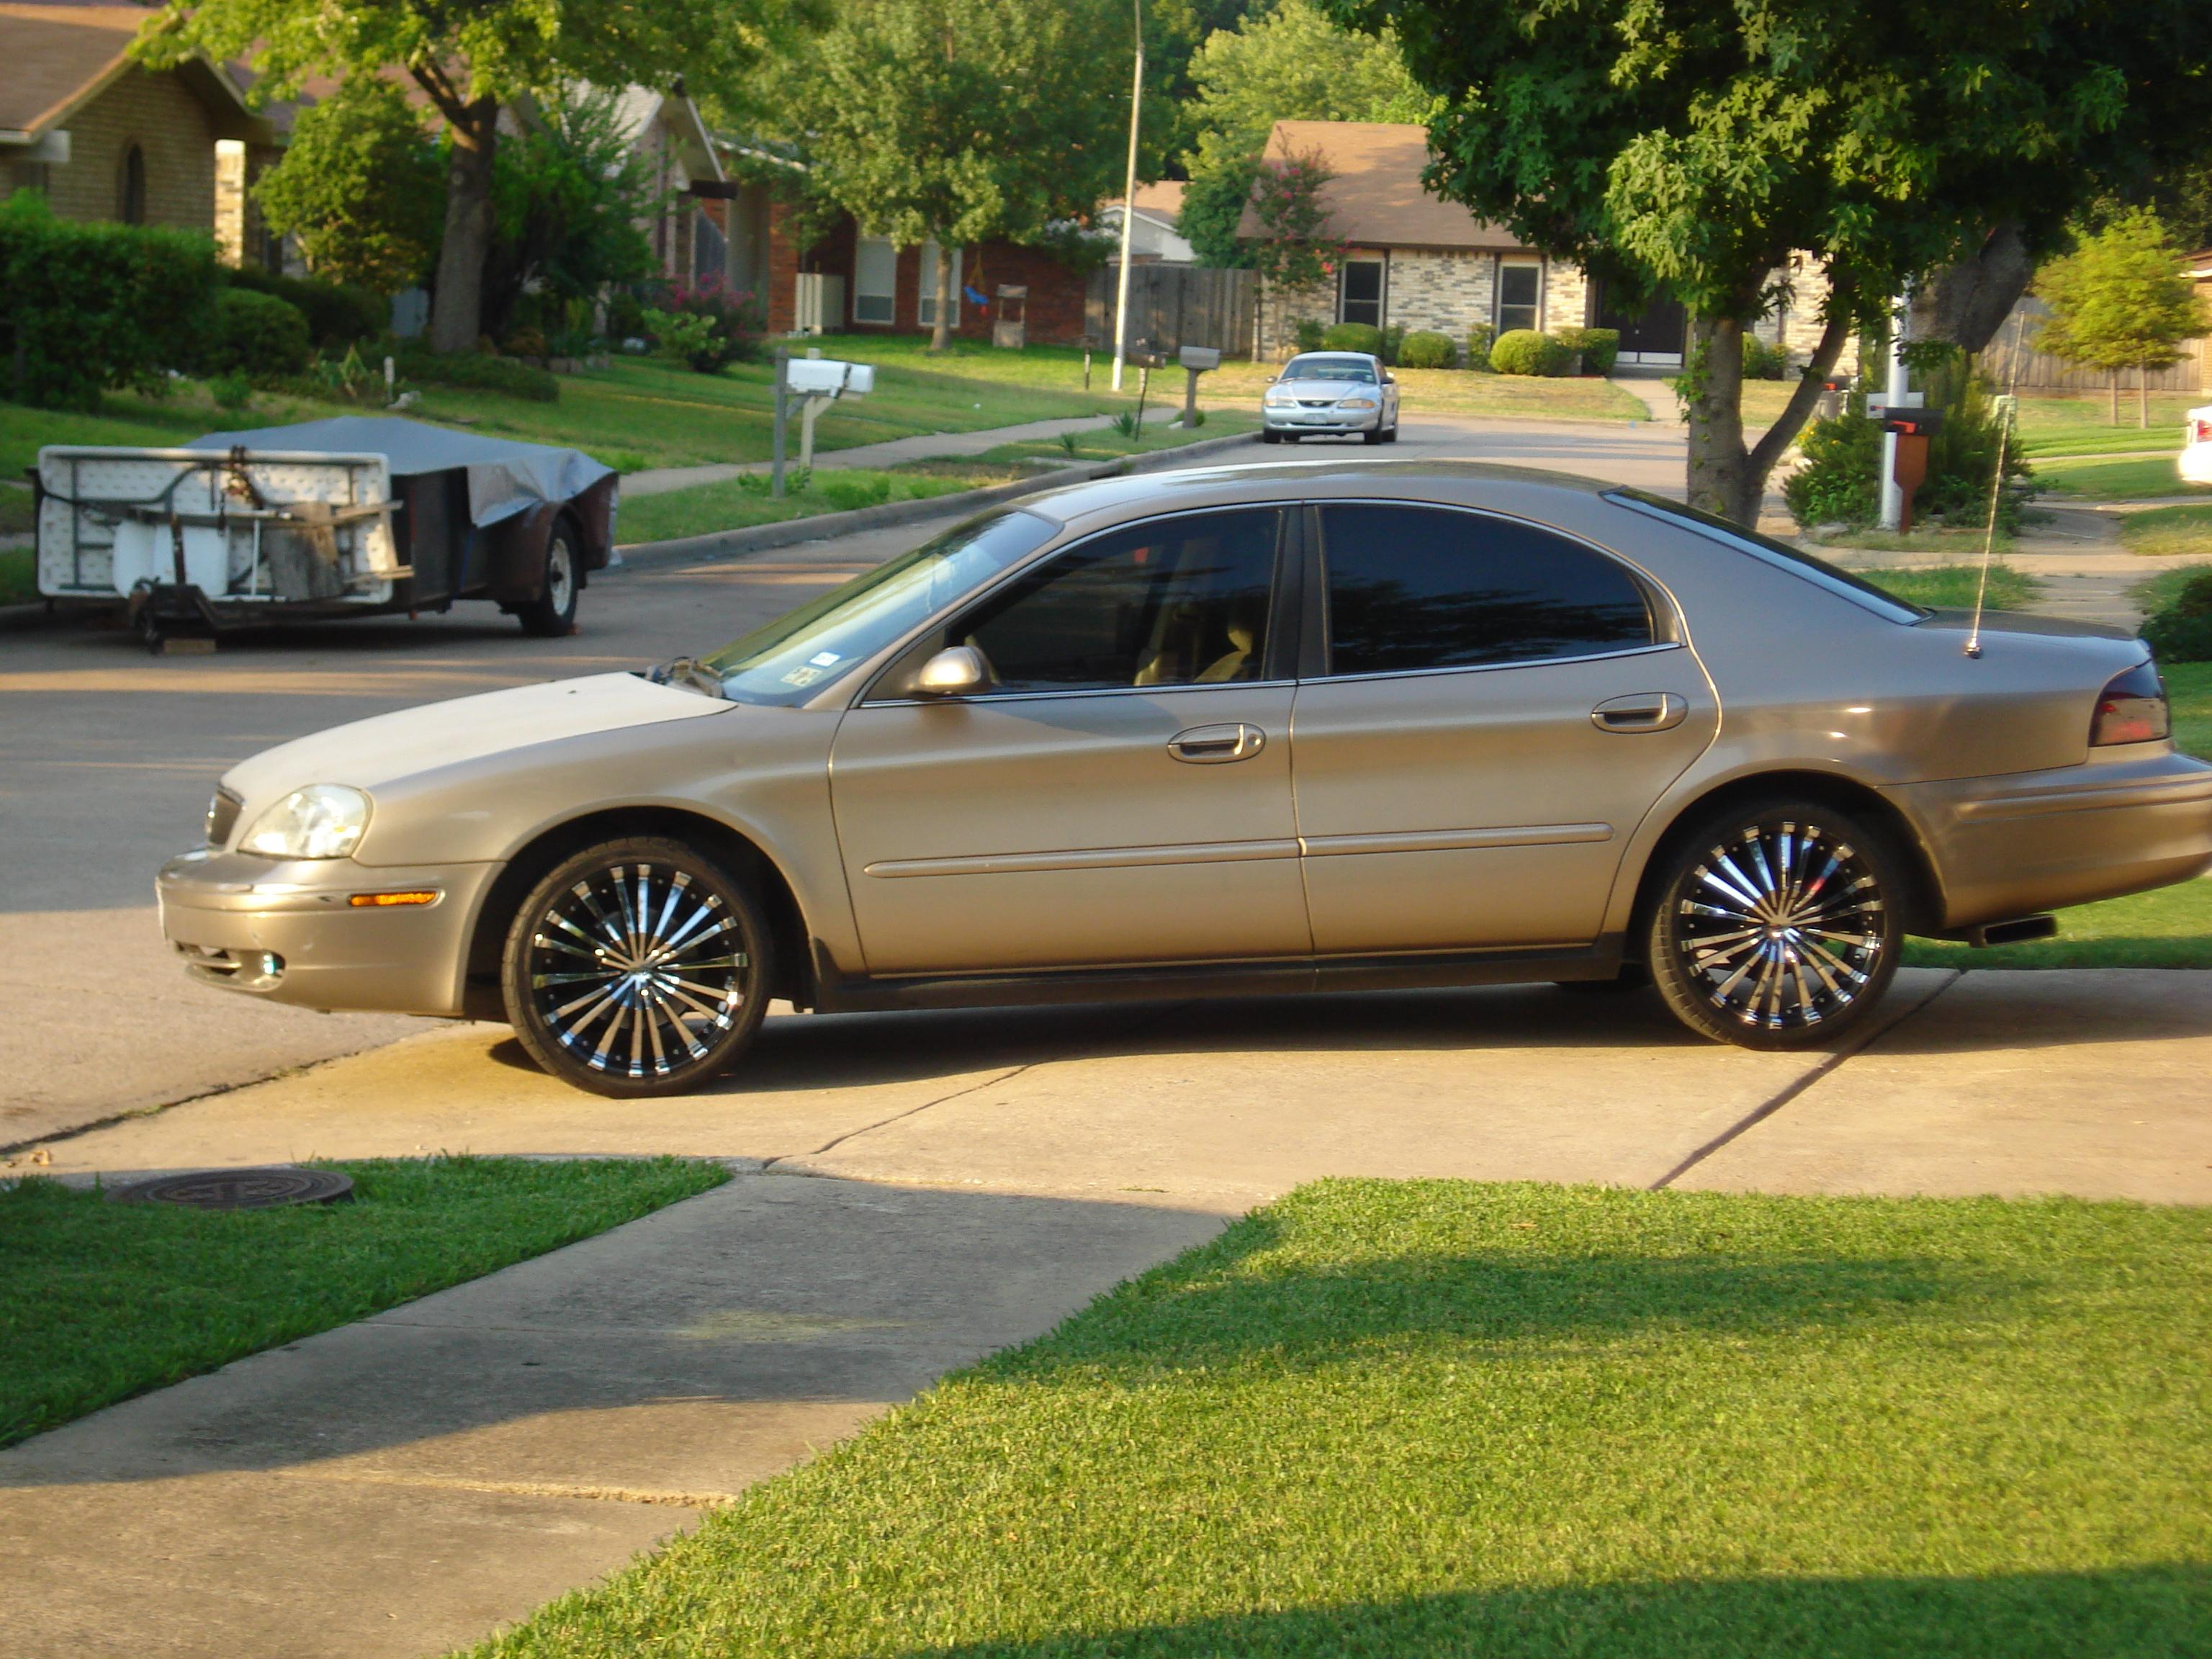 BIG214's 2003 Mercury Sable